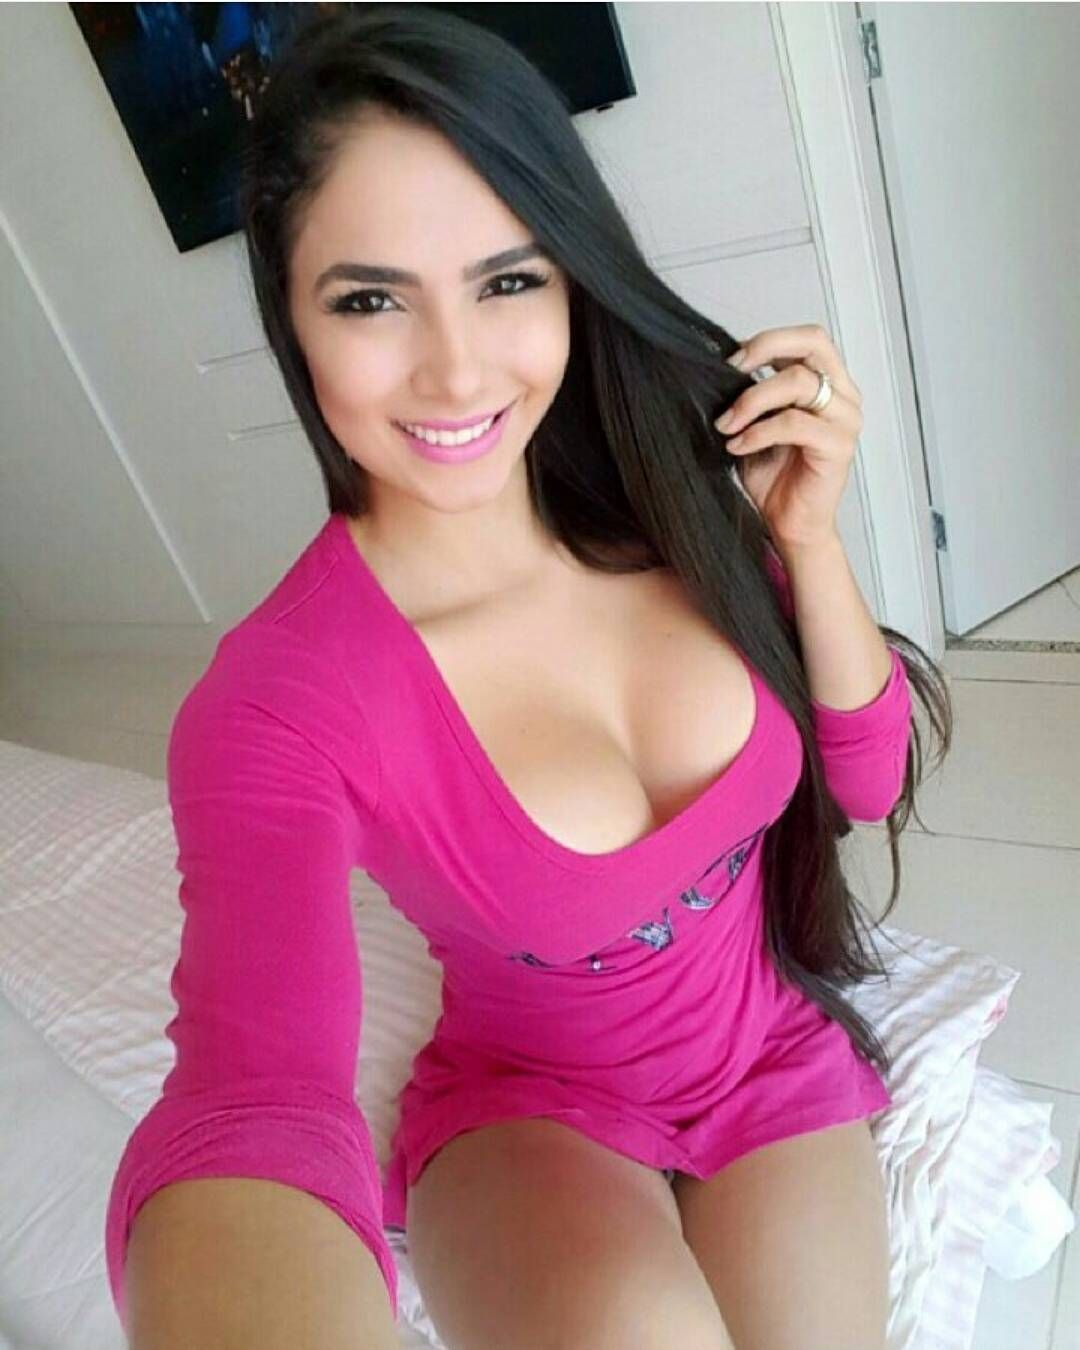 Hermosa Colombiana Jjr 19 Go Follow